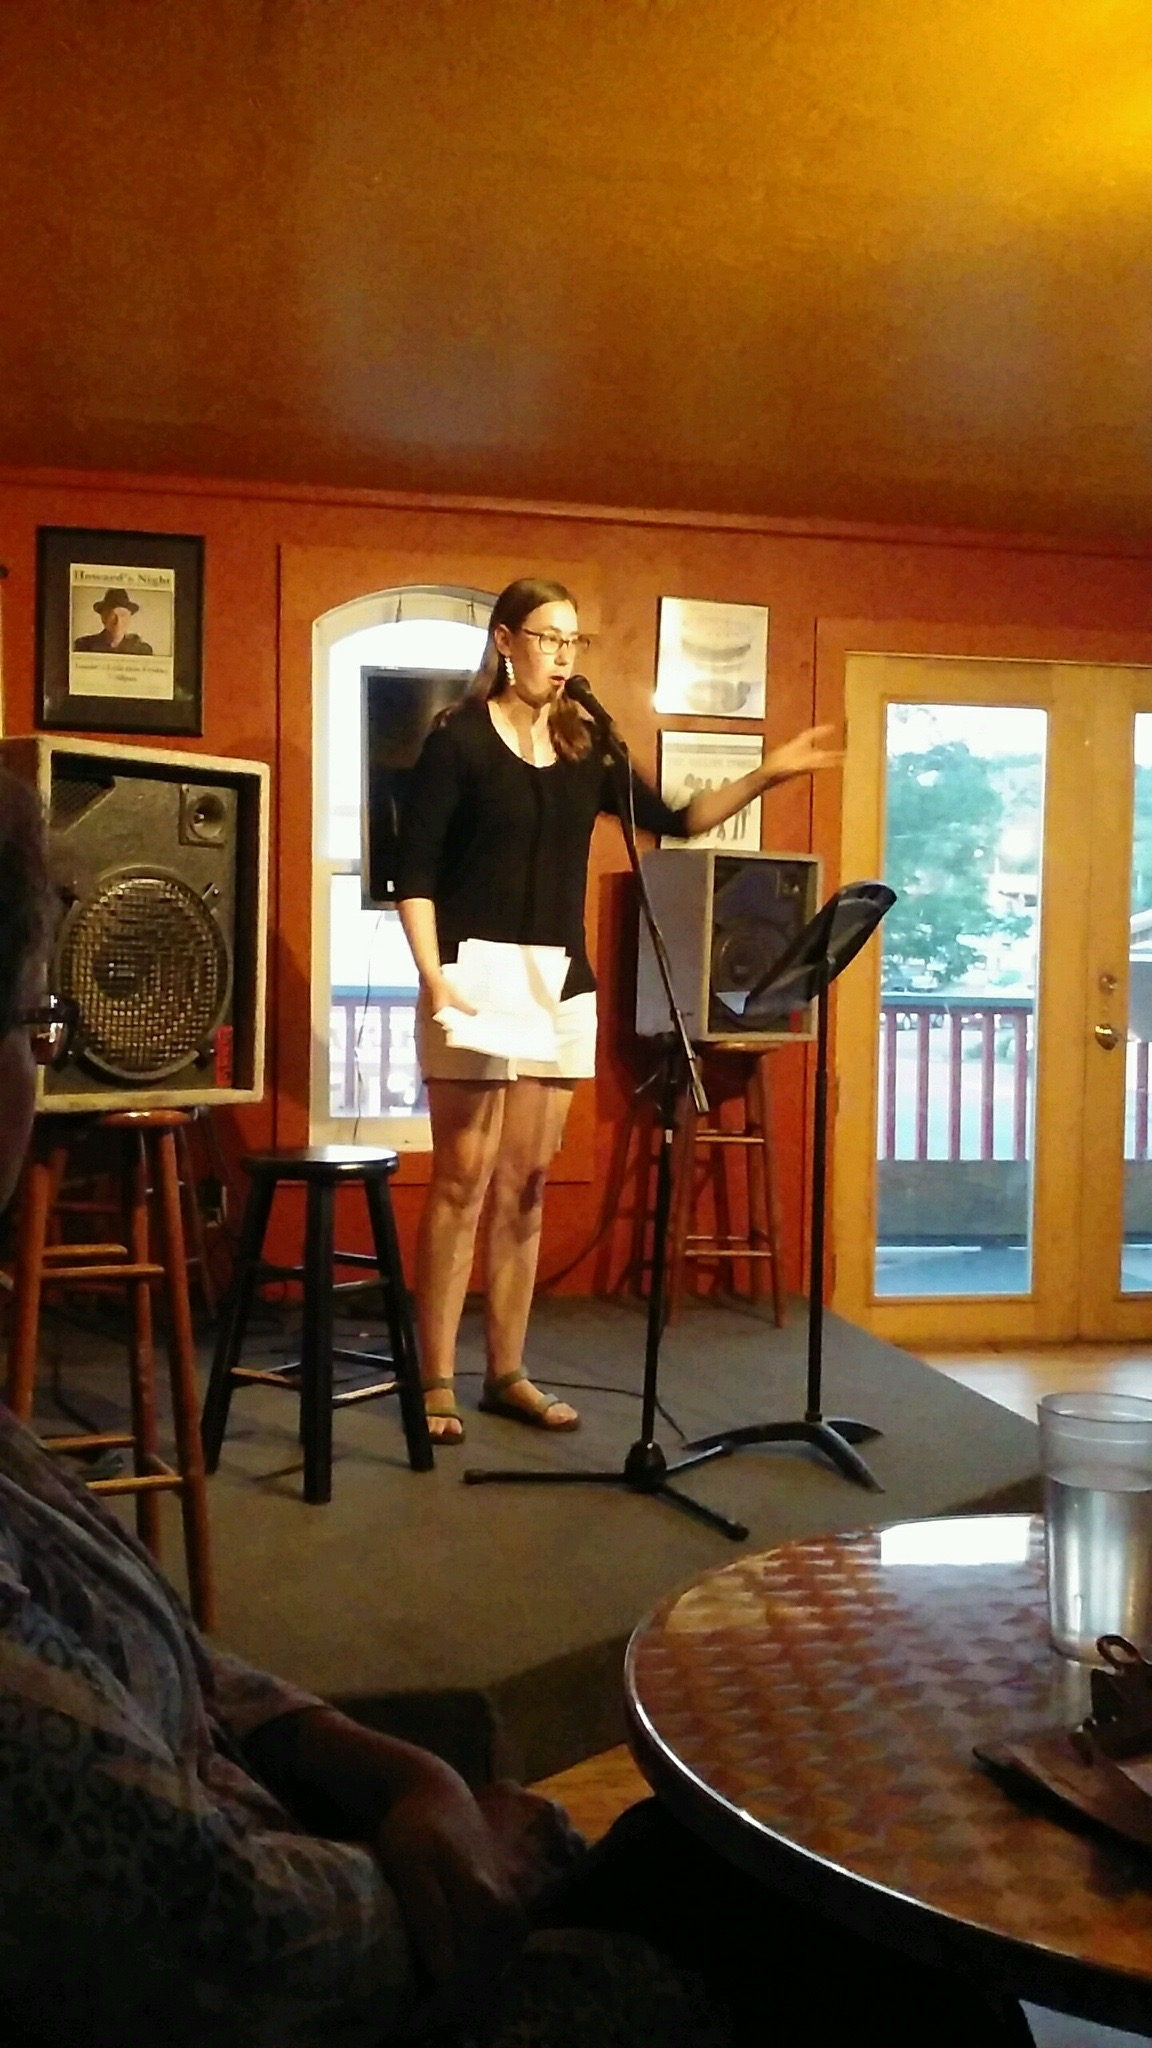 Gesturing dramatically during Open Mic.